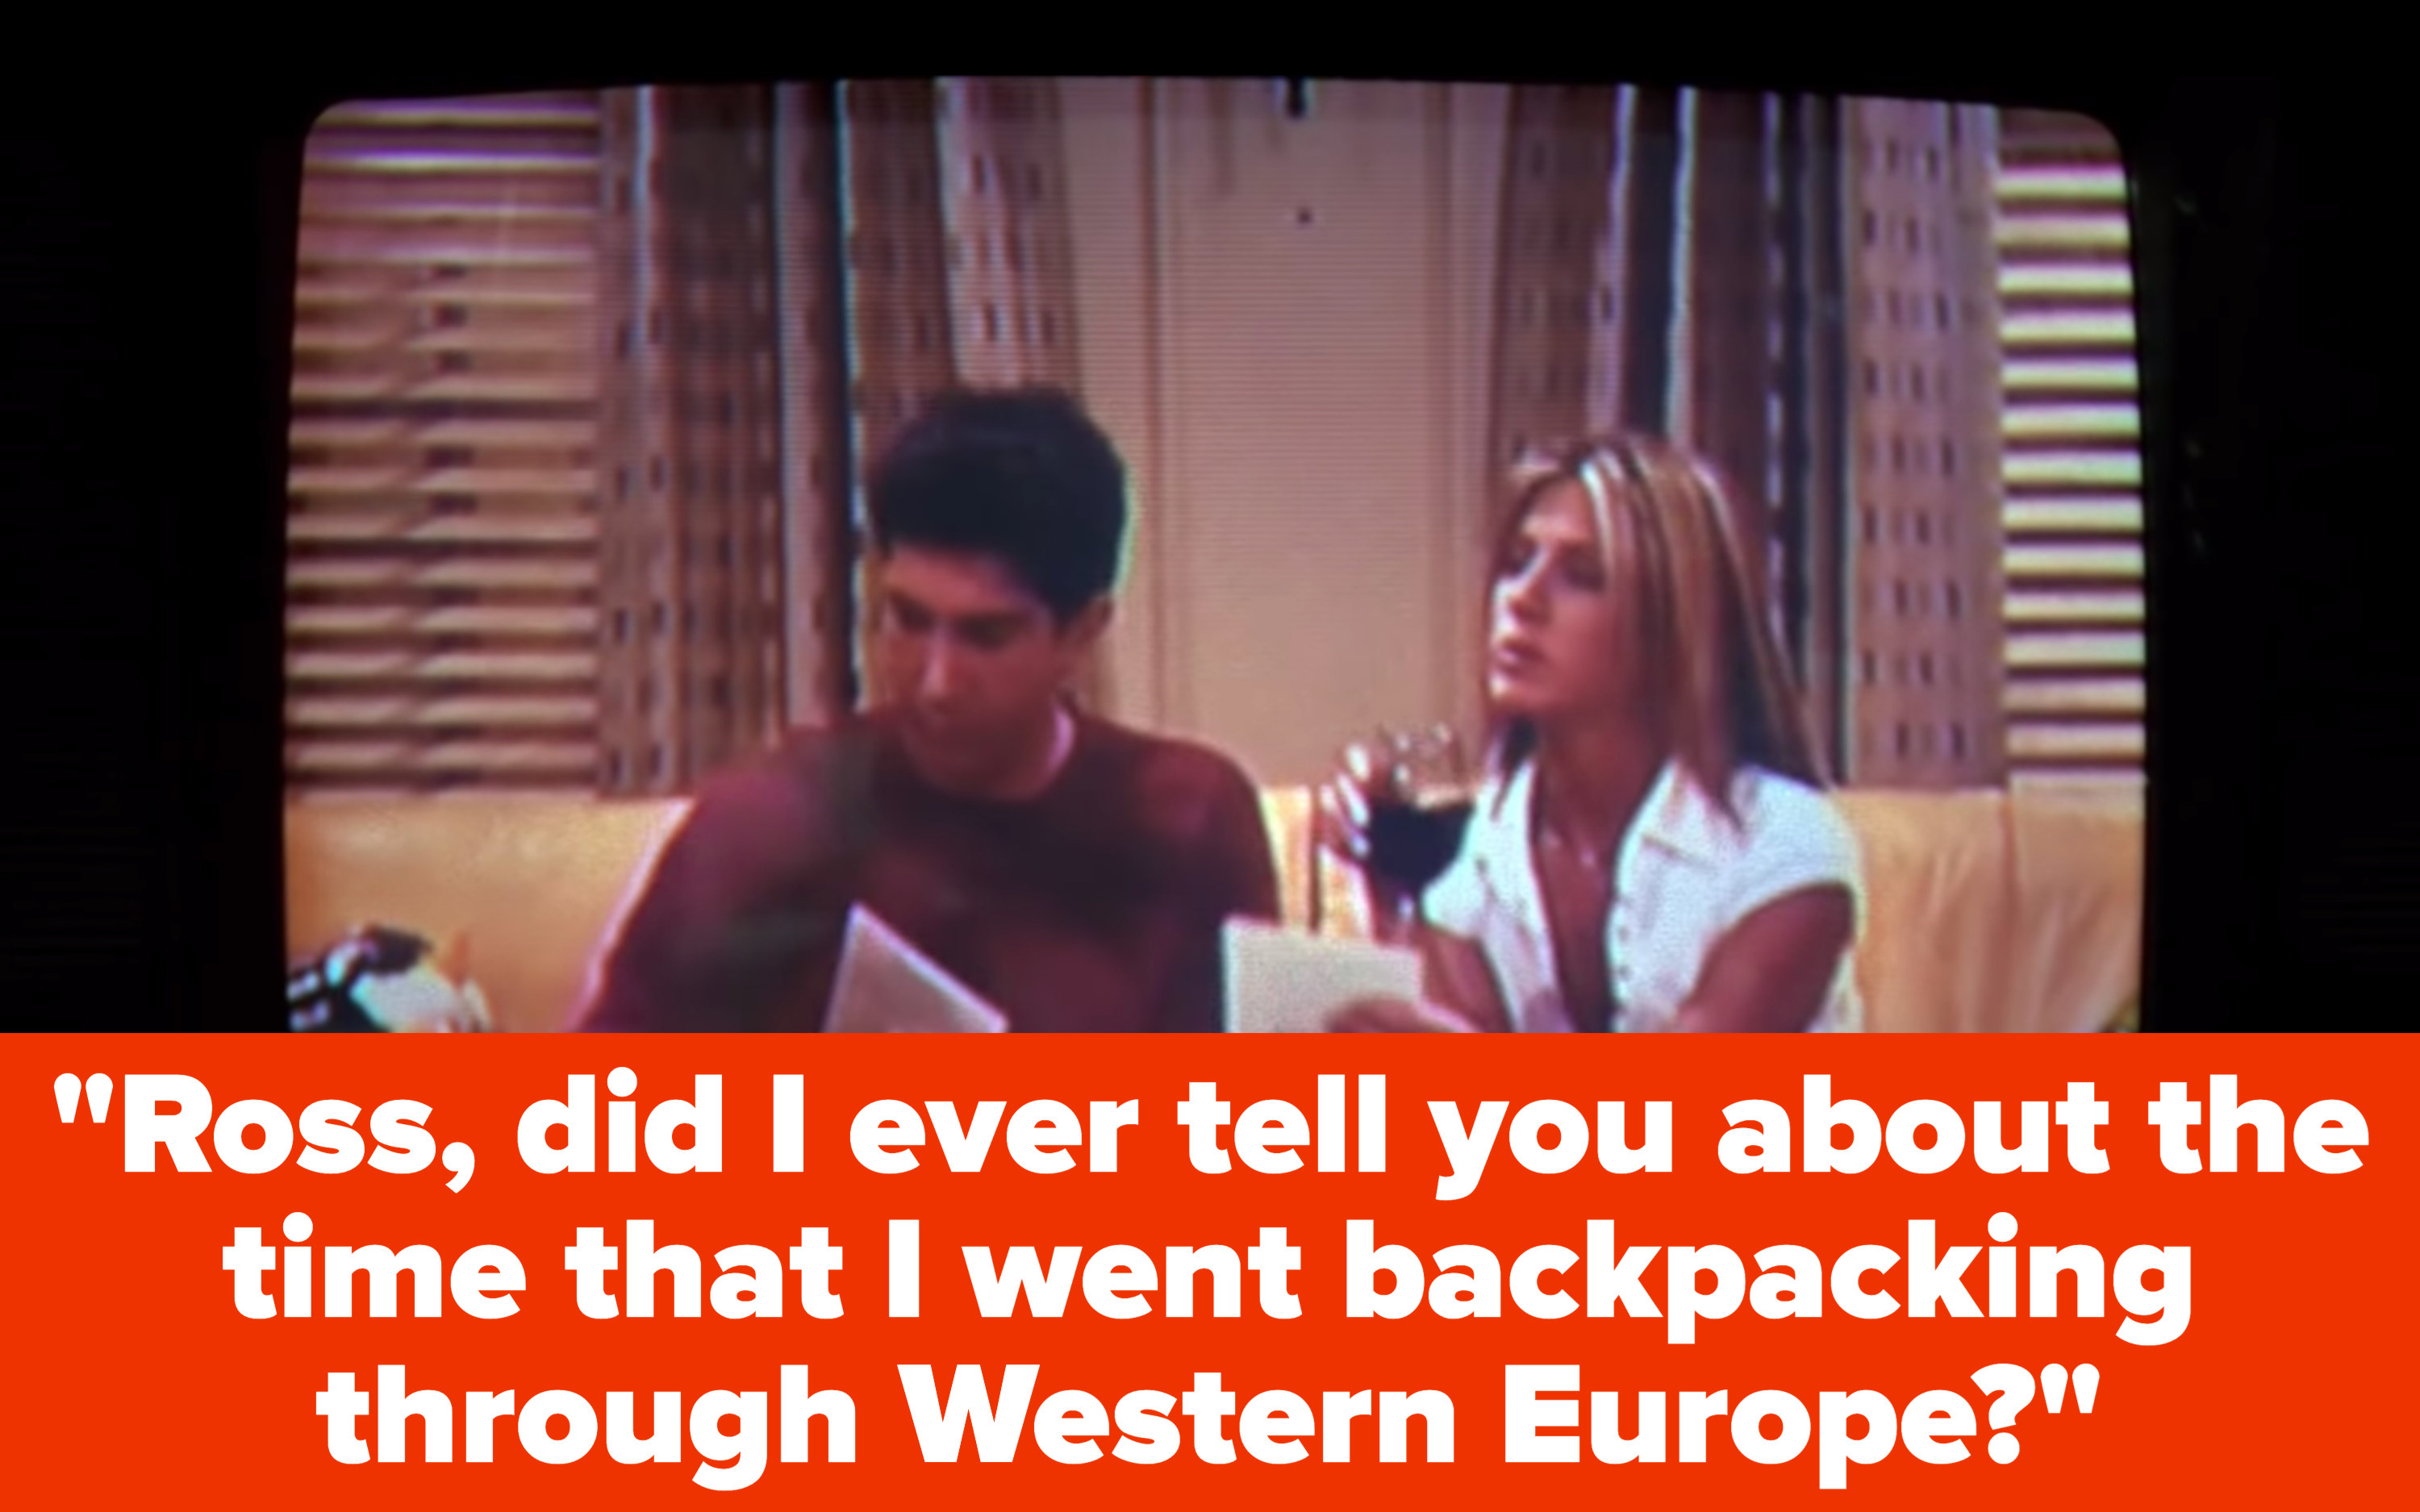 """Rachel and Ross sit on Joey and Chandler's couch and she says to him, """"Ross, did I ever tell you about the time that I went backpacking through Western Europe?"""""""